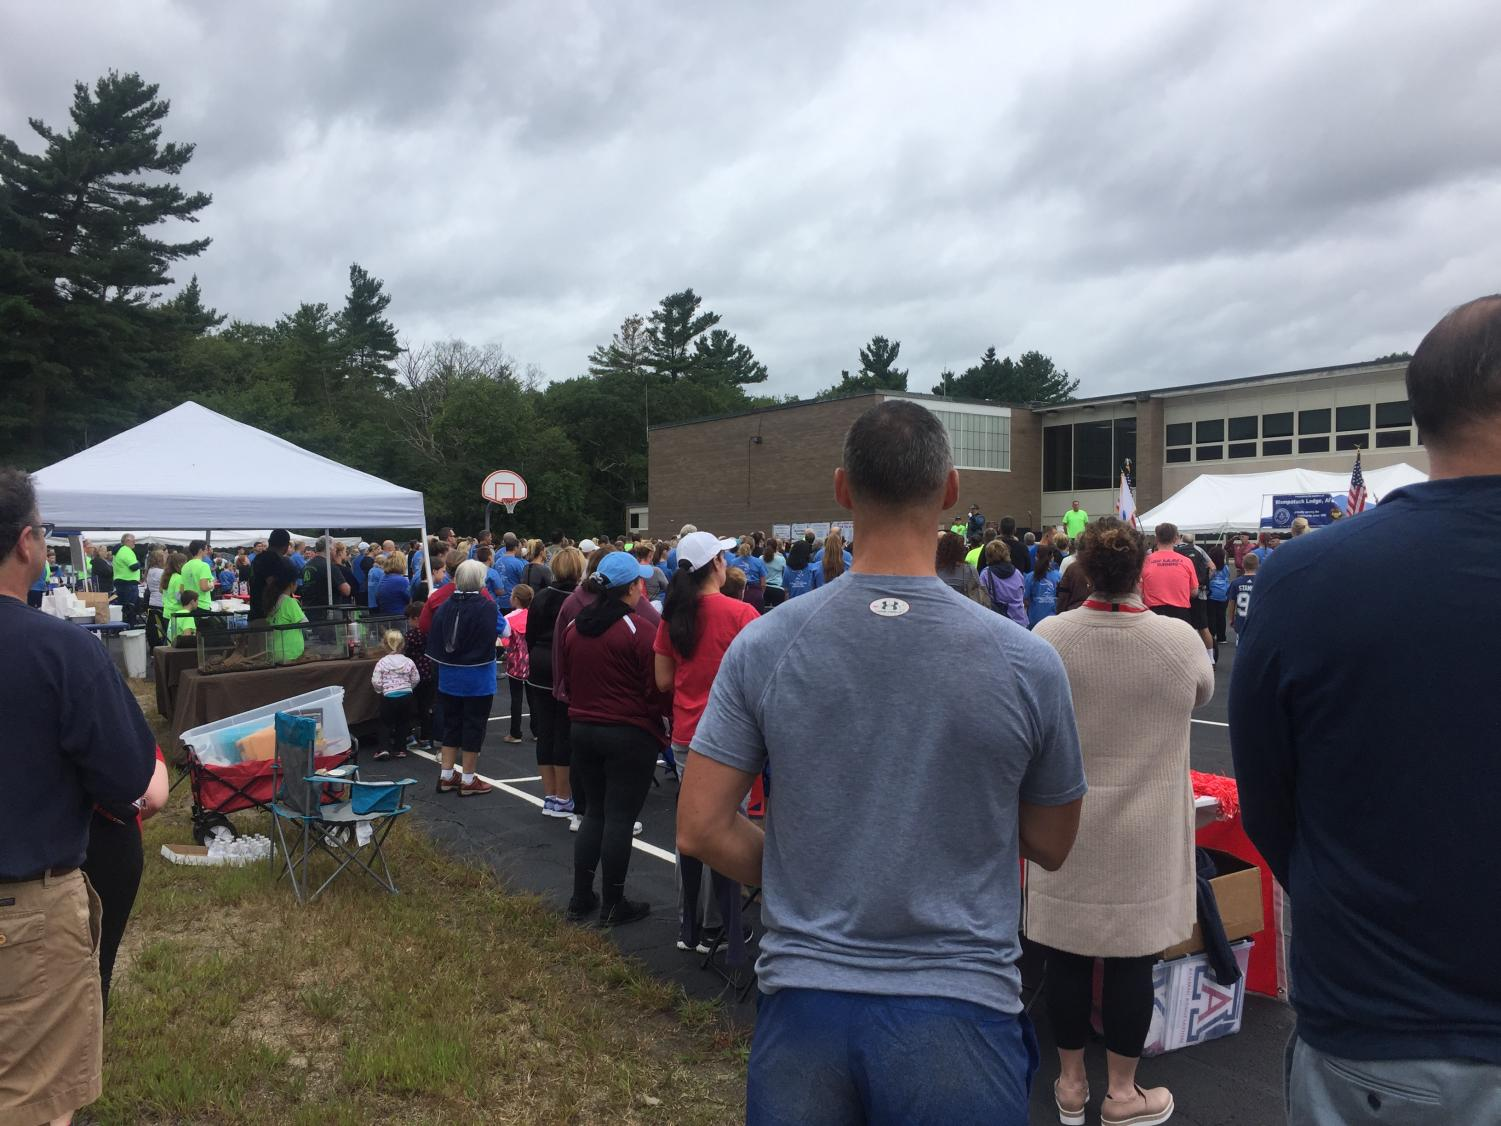 Crowds+Gather+at+the+17th+Annual+Coombs+Memorial+Race